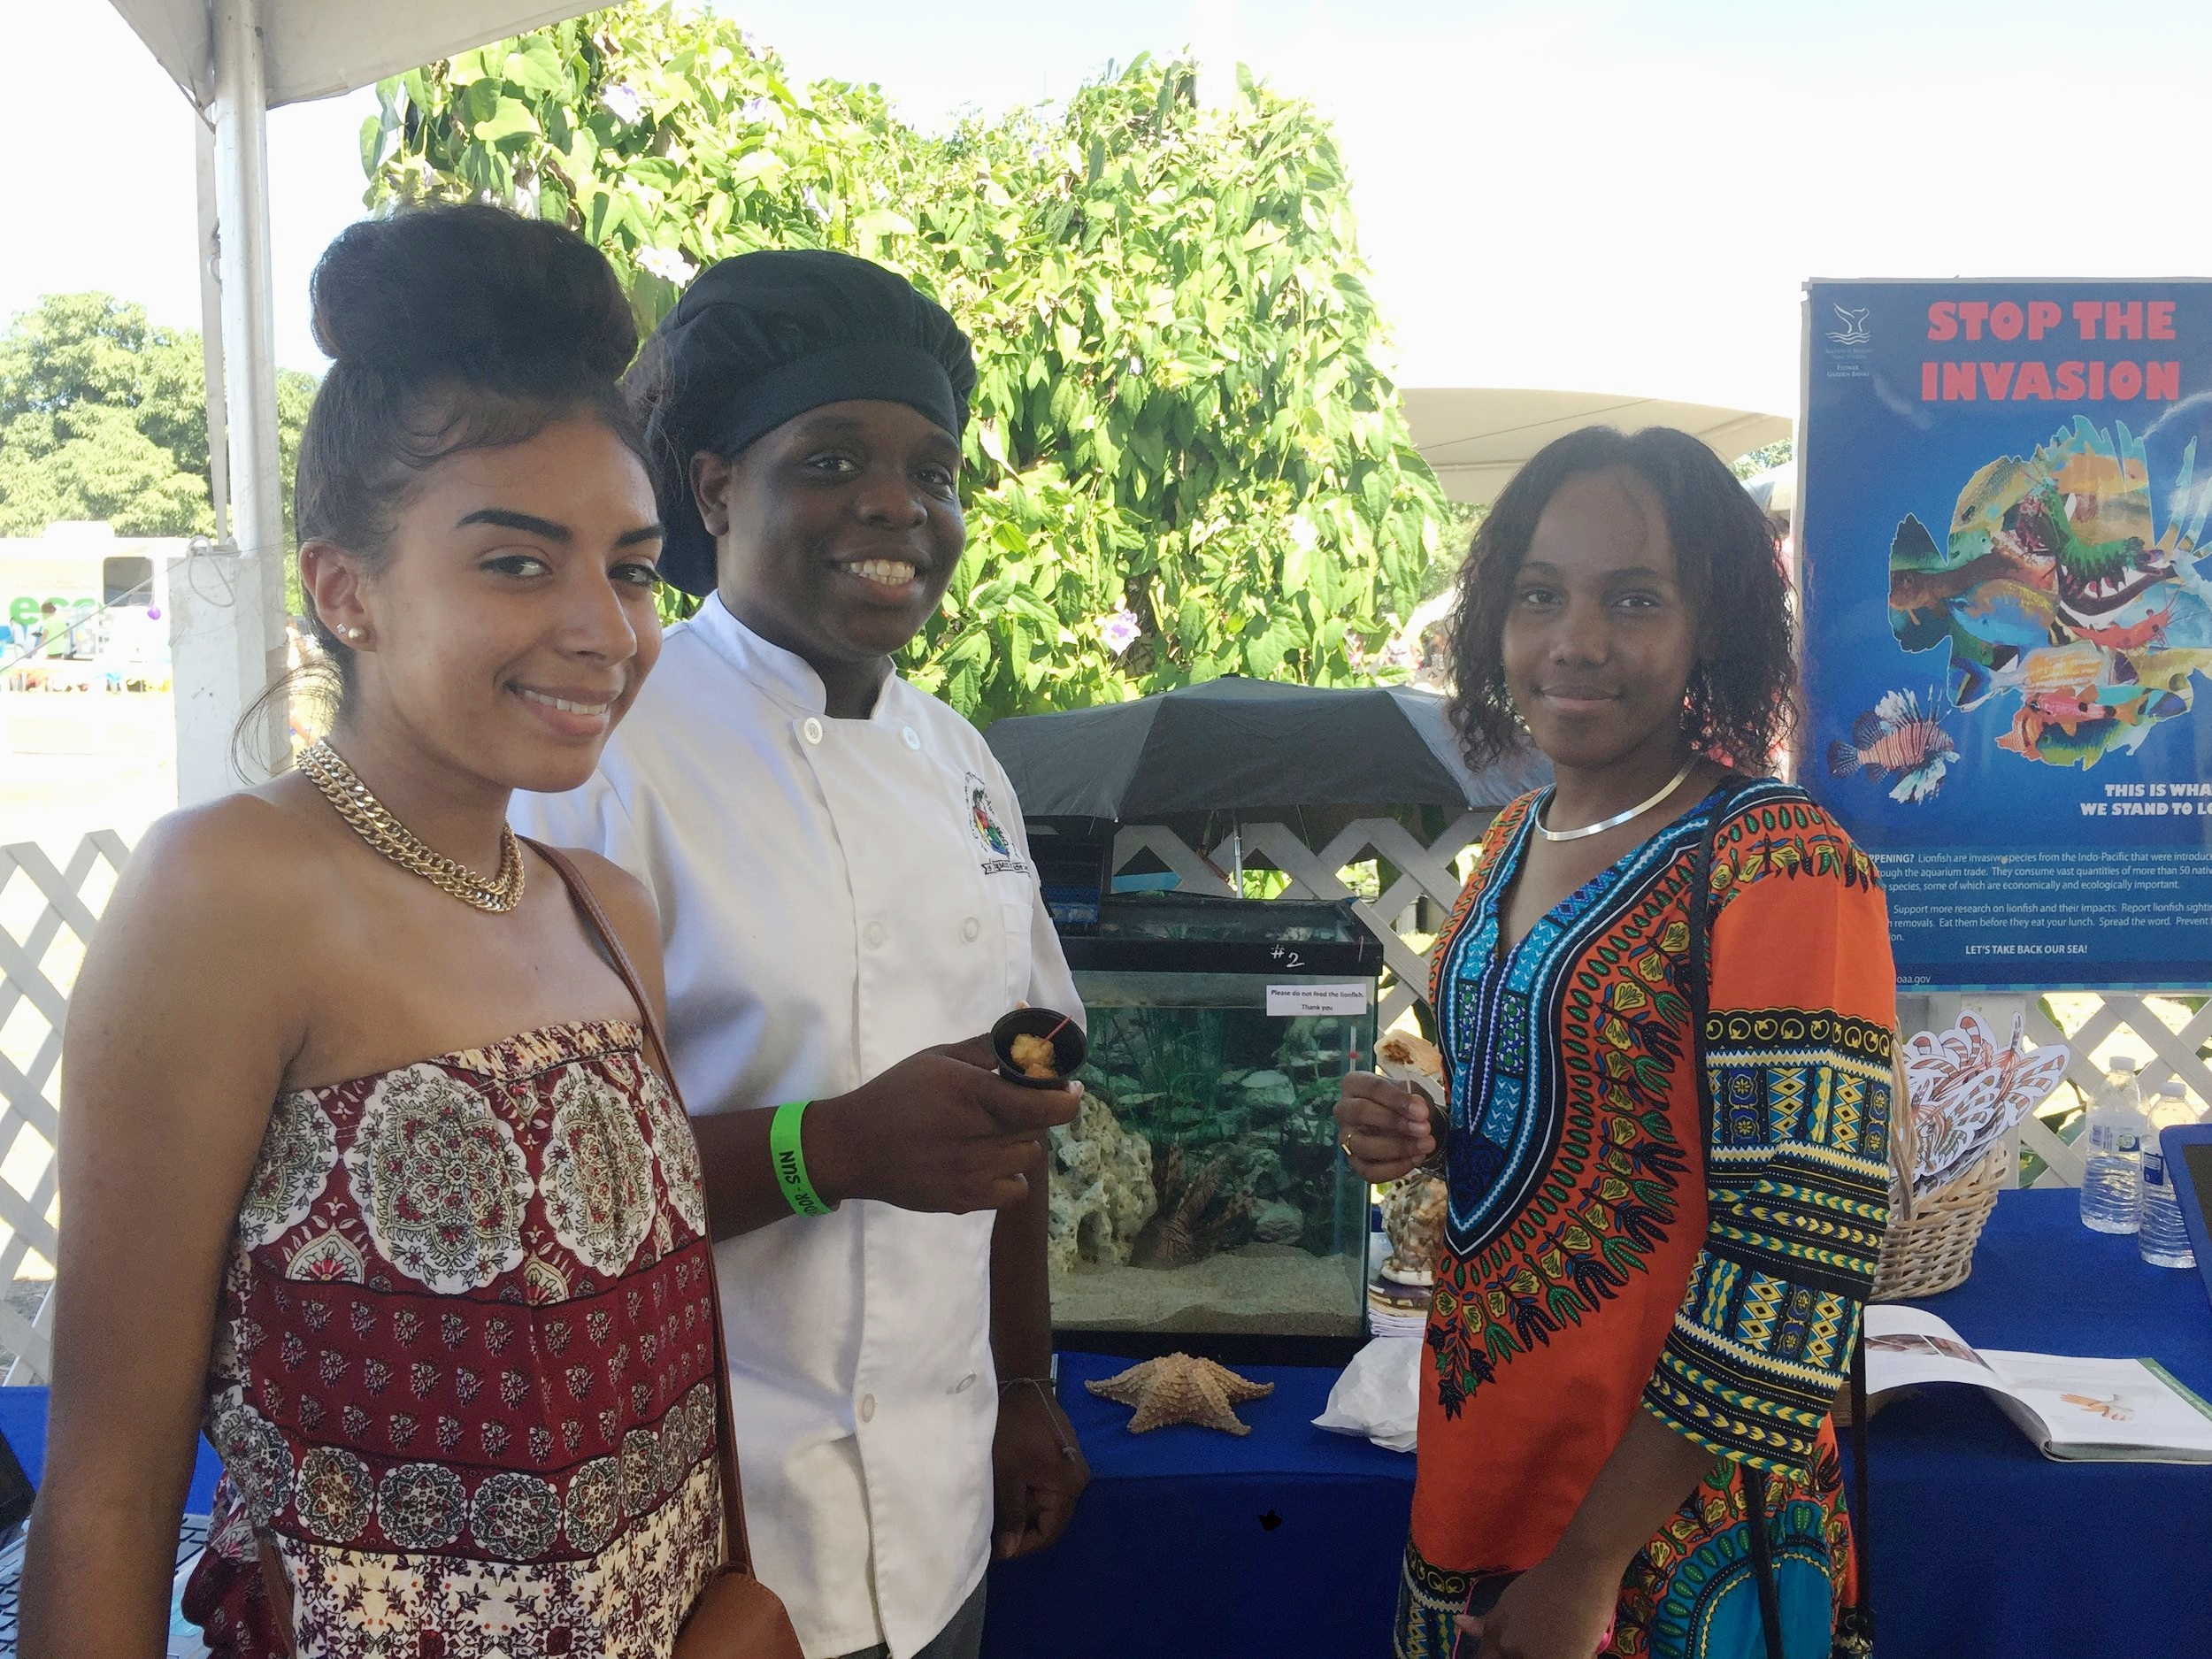 """As part of the """"Eat To Beat"""" campaign, students affiliated with Virgin Islands Institute of STEM Education Research and Practice, University of the Virgin Islands and St. Croix Educational Complex promote the lionfish as a food source to help control the population. Some of the students are seen here for a public lionfish tasting event at the St. Croix annual Agricultural Fair"""